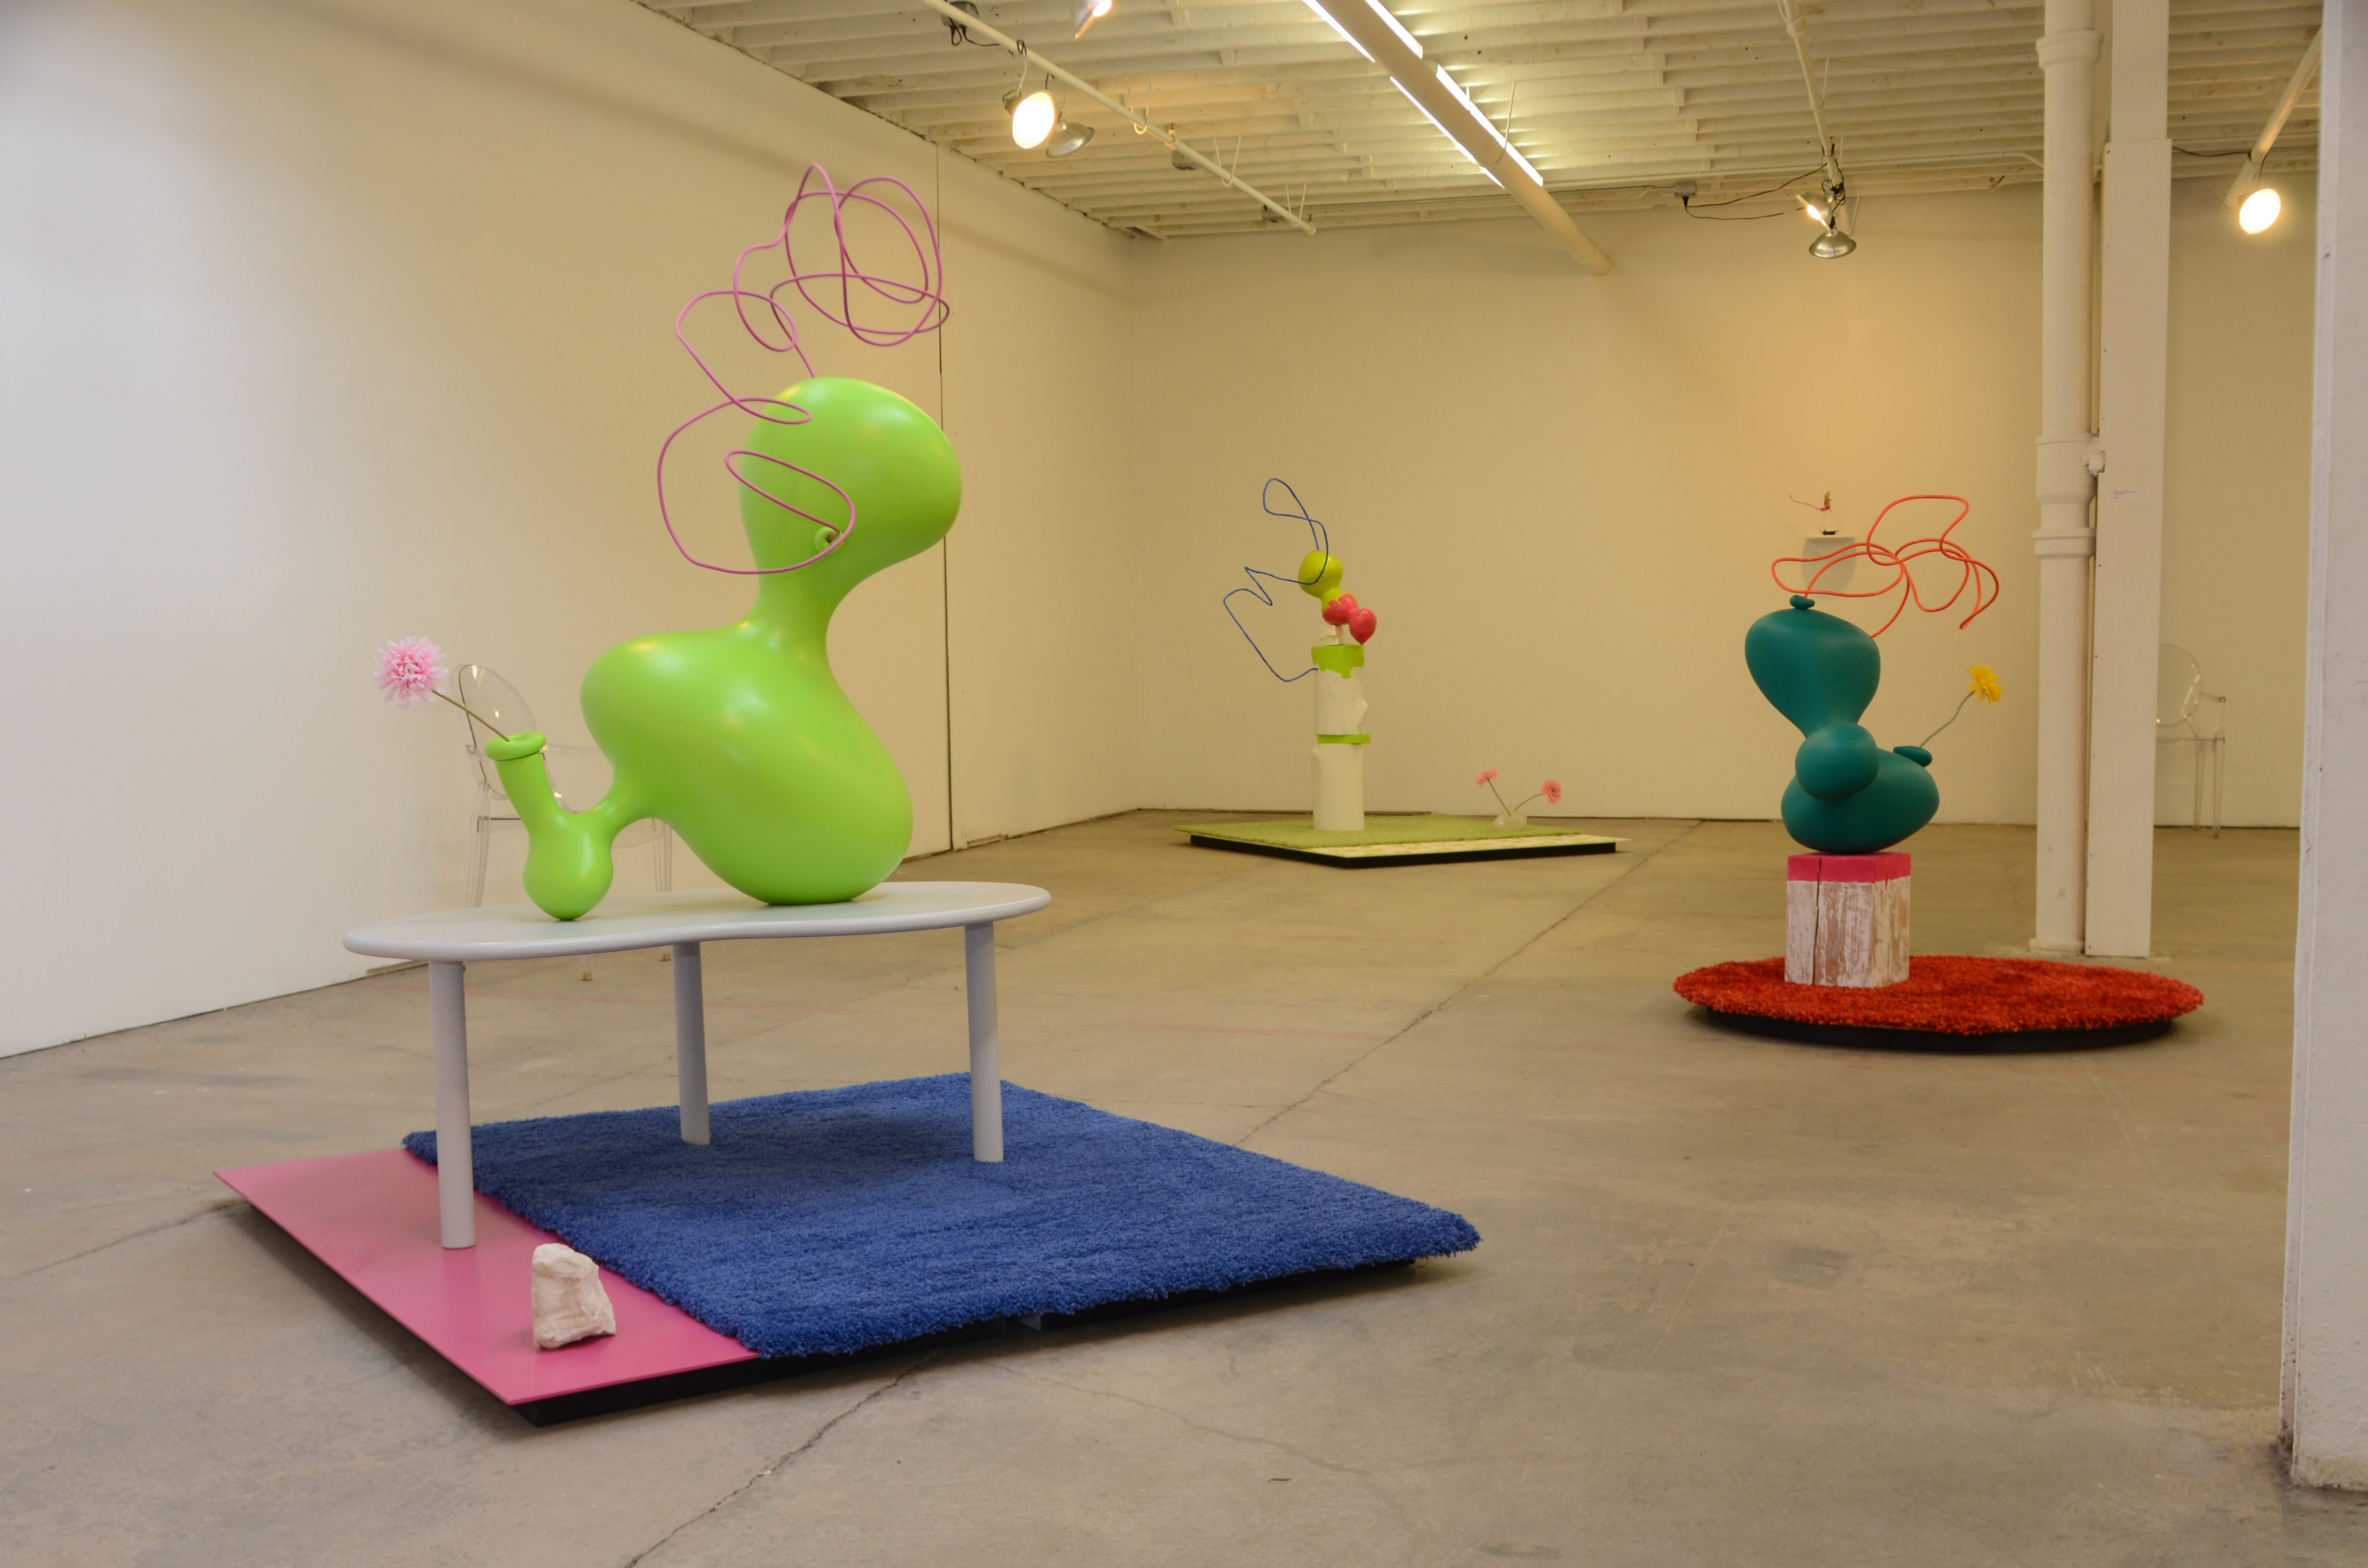 'Roberly Bell: Some Things' is on view through May 29 in Body of Trade and Commerce Gallery.